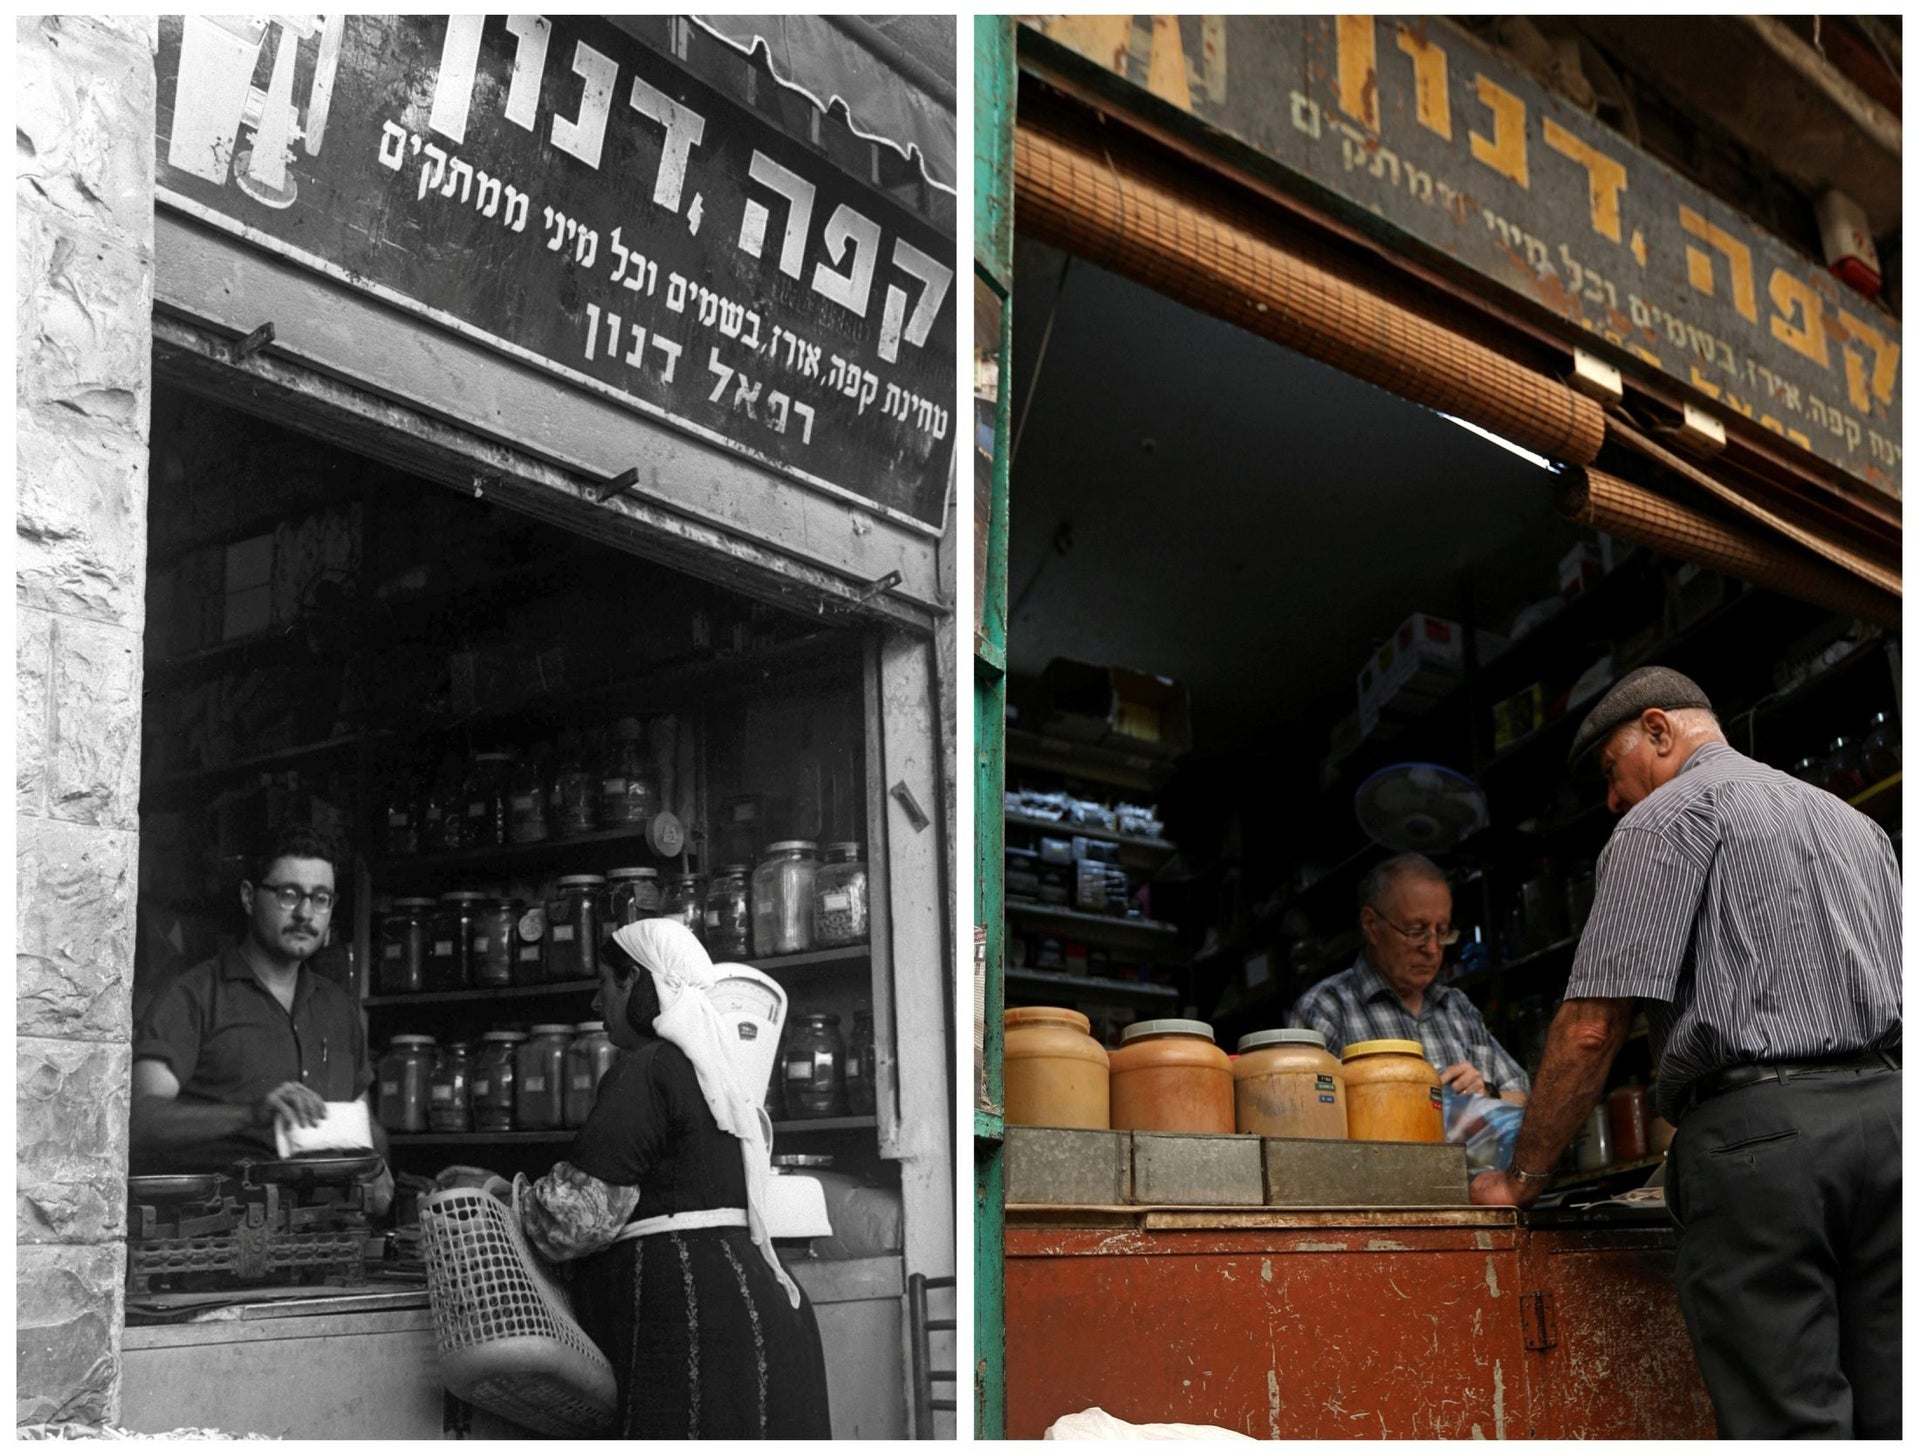 "A combination picture shows an Arab woman shopping at a stall selling freshly ground spices at a market in Jerusalem, in this Government Press Office handout photo, taken July 1, 1967 (top) and a man buying freshly ground spices from the same stall May 16, 2017. REUTERS/Ilan Bruner/Government Press Office/Handout via Reuters (top)/Ronen Zvulun THIS PICTURE WAS PROVIDED BY A THIRD PARTY. REUTERS IS UNABLE TO INDEPENDENTLY VERIFY THE AUTHENTICITY, CONTENT, LOCATION OR DATE OF THIS IMAGE. FOR EDITORIAL USE ONLY. NOT FOR SALE FOR MARKETING OR ADVERTISING CAMPAIGNS. SEARCH ""1967 WAR"" FOR THIS STORY. SEARCH ""WIDER IMAGE"" FOR ALL STORIES."